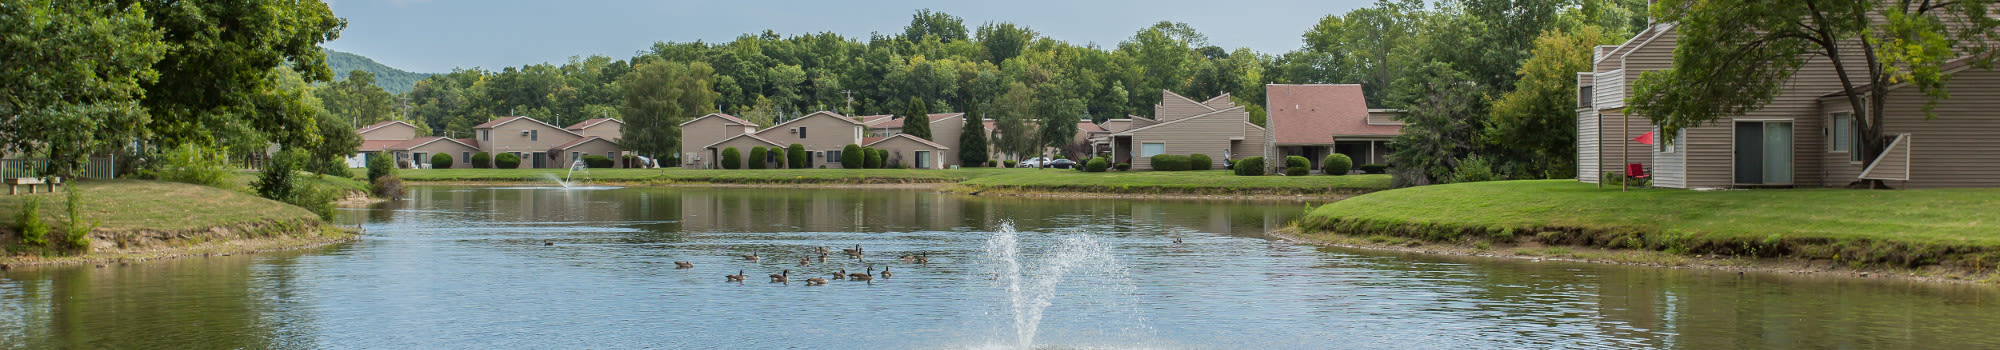 Emerald Springs Apartments offers a great neighborhood to its residents